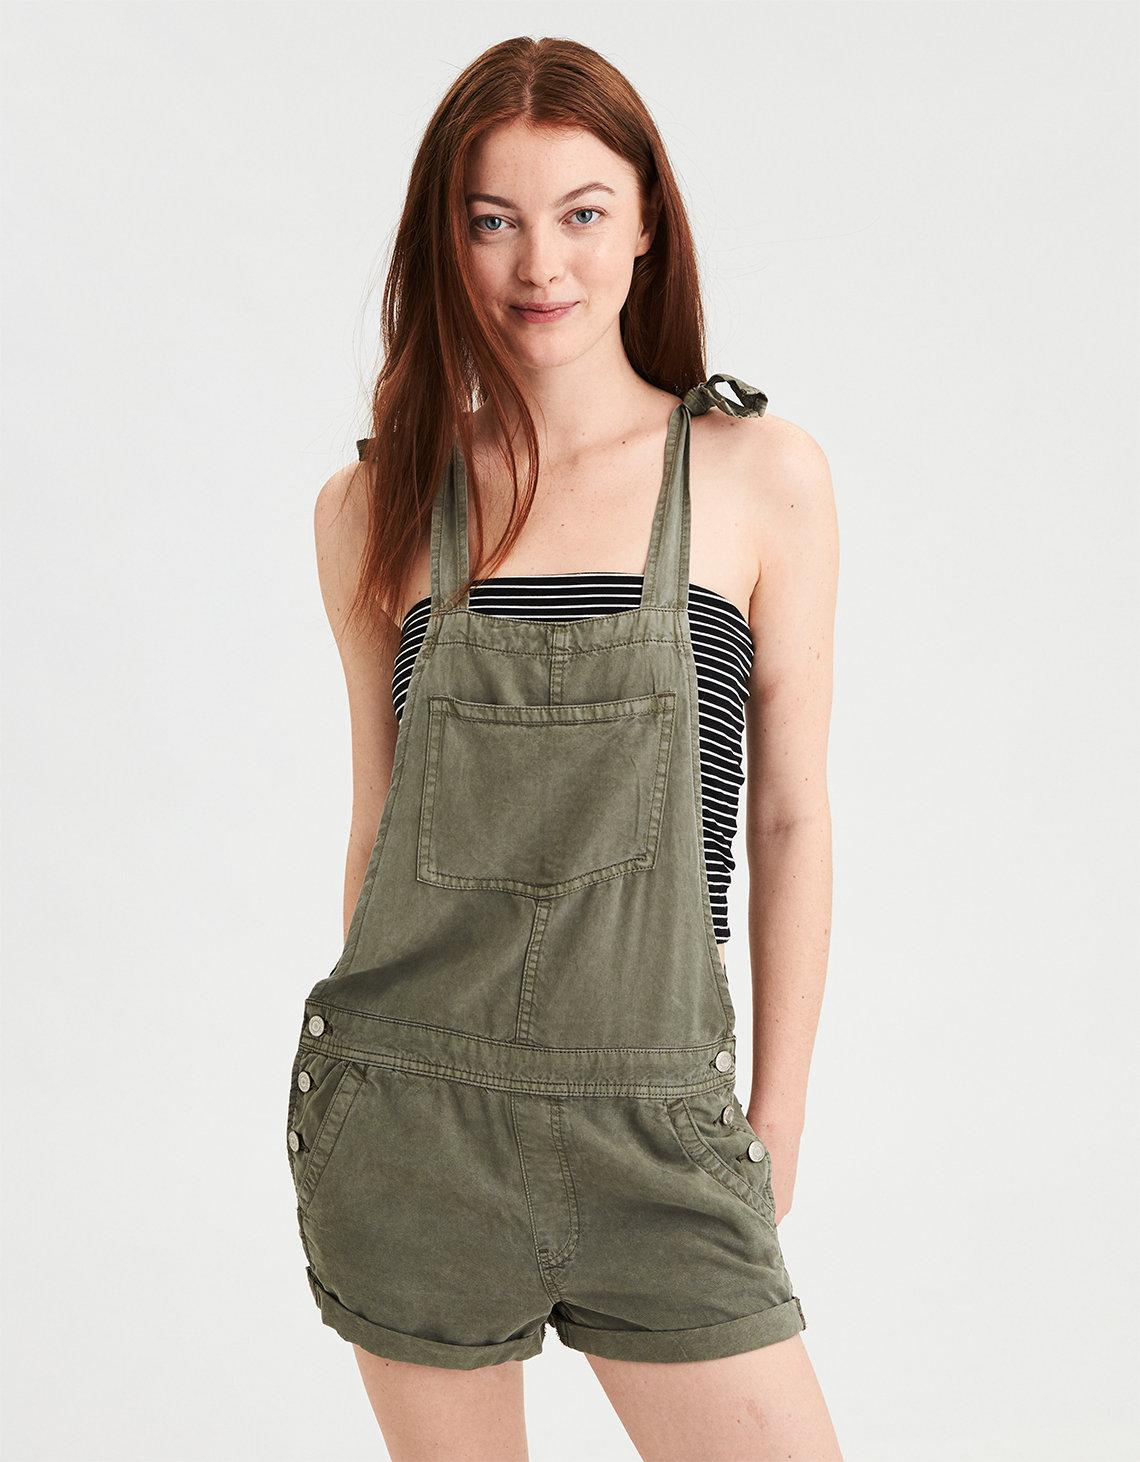 d6e10a1a4f29 Lyst - American Eagle Ae Tomgirl Overall Short in Green